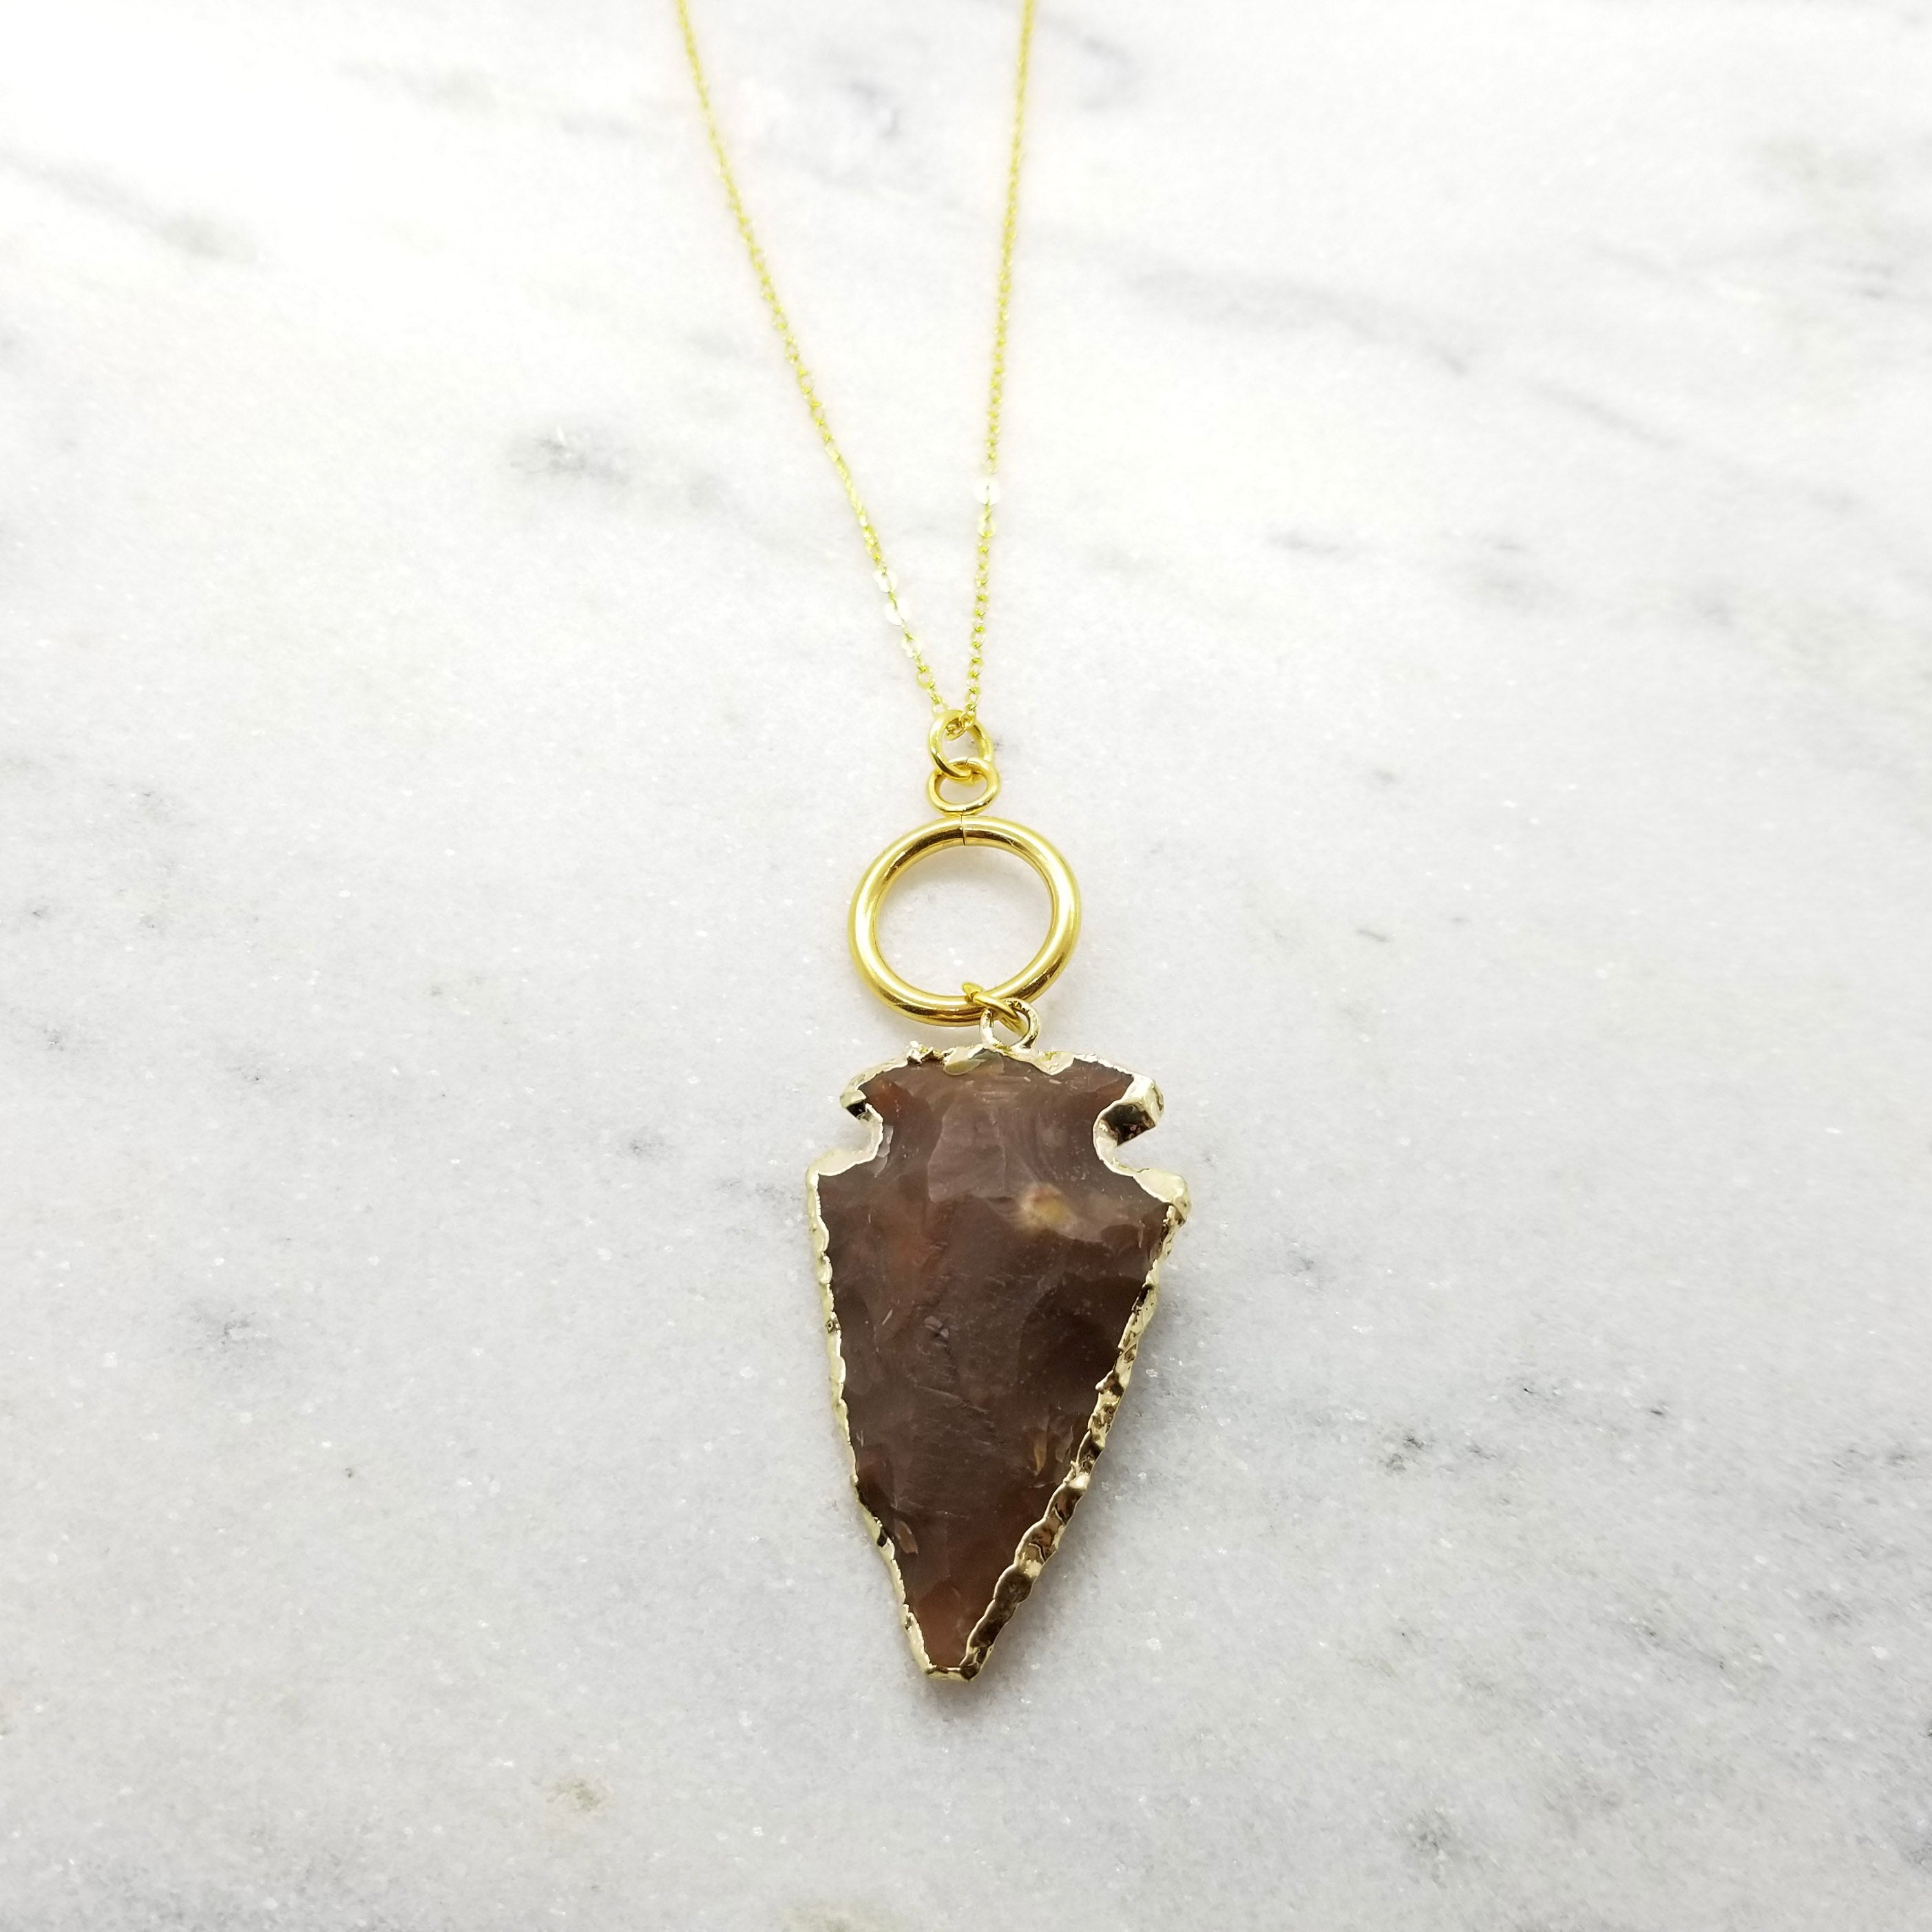 Arizona Arrowhead Necklace